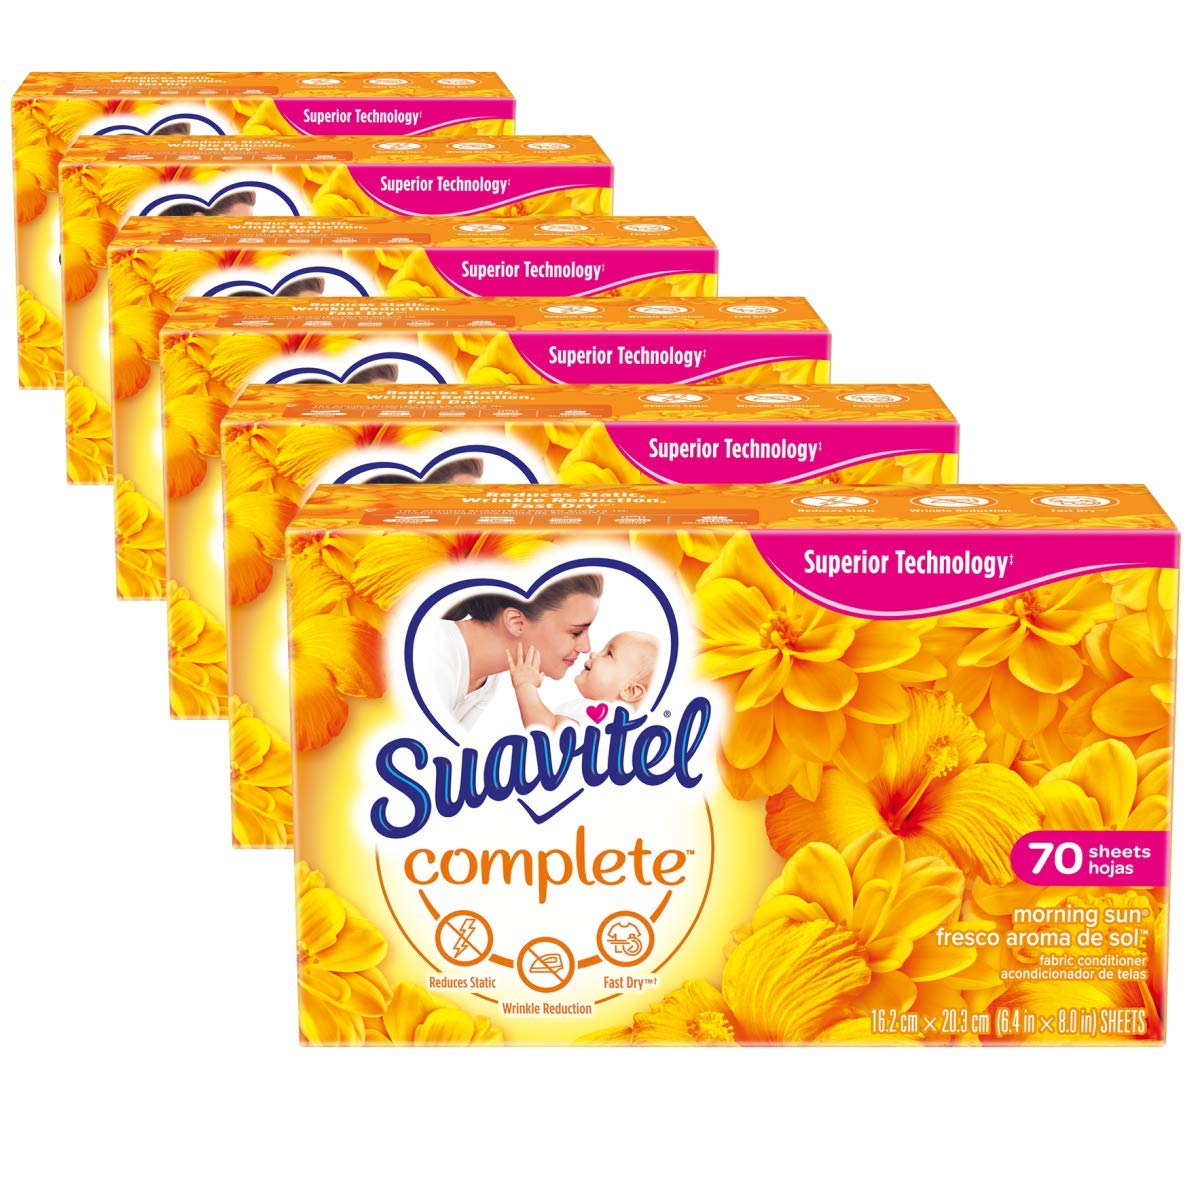 Suavitel Complete Dryer Sheets, Morning Sun, 70 Sheets | Compare to Dryer Balls | Household Supplies | Laundry Scent Boosters, Laundry Sheets & Laundry Softener | Model Number: 139375 (Pack of 6)